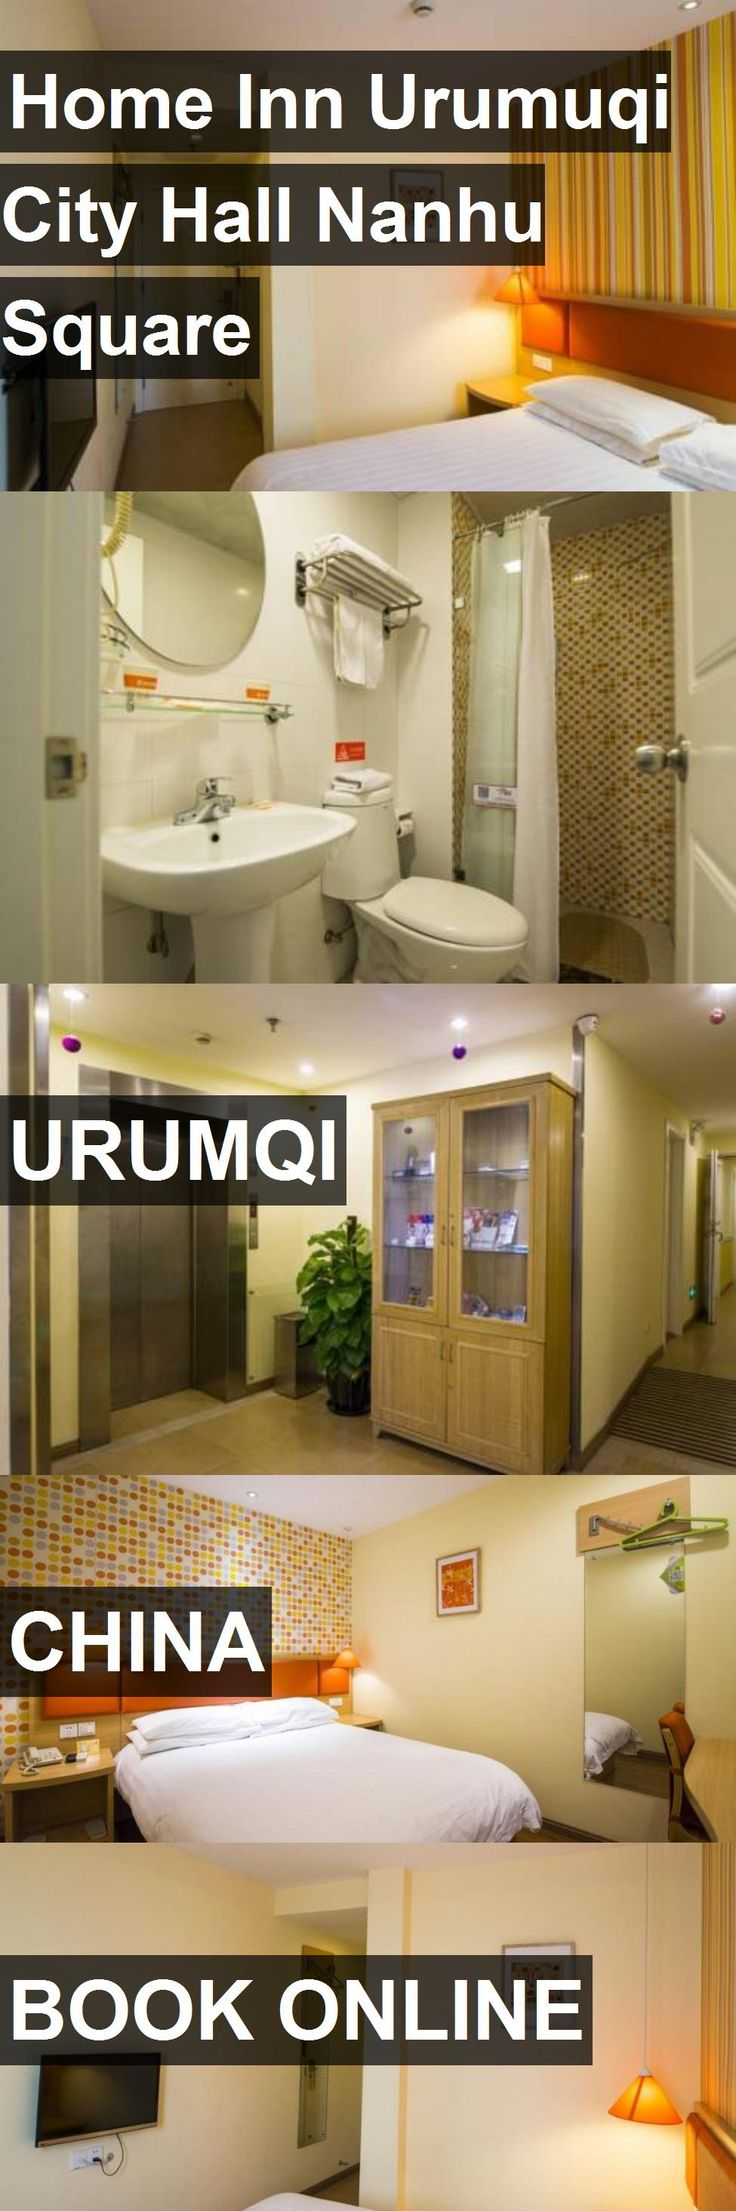 Hotel Home Inn Urumuqi City Hall Nanhu Square in Urumqi, China. For more information, photos, reviews and best prices please follow the link. #China #Urumqi #HomeInnUrumuqiCityHallNanhuSquare #hotel #travel #vacation